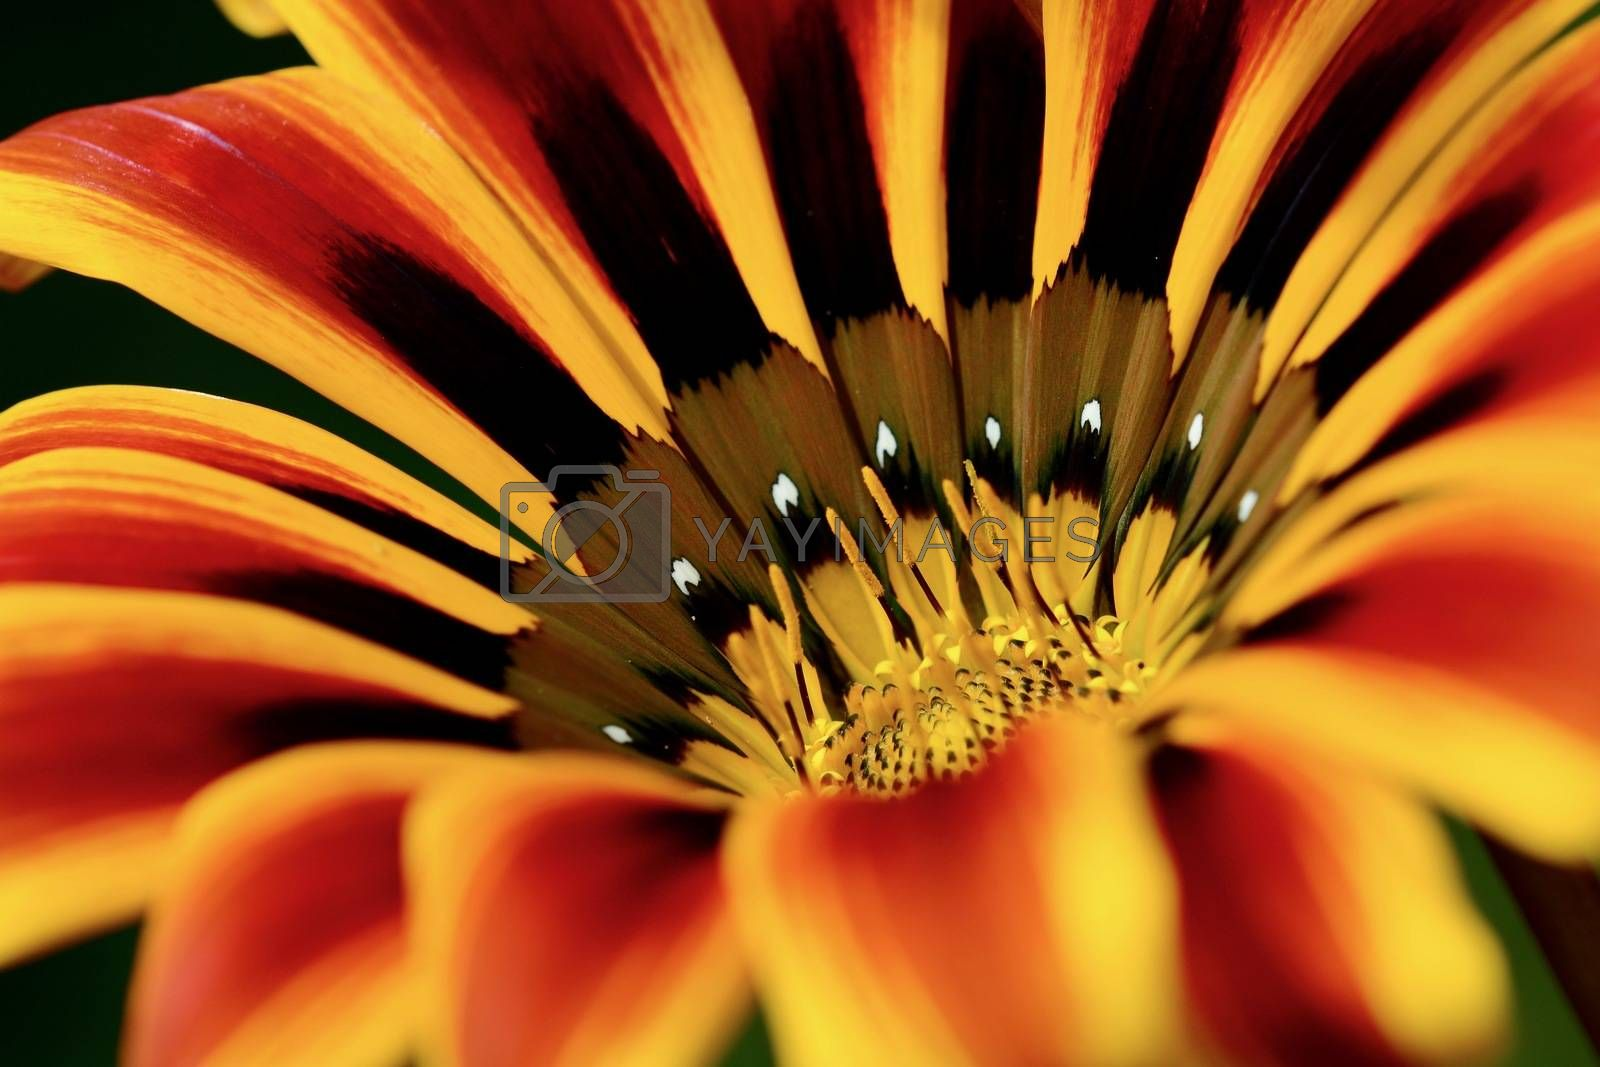 close-up photo of a flower; beautiful flowers, being close to nature, bringing nature close to you, Gazania flower